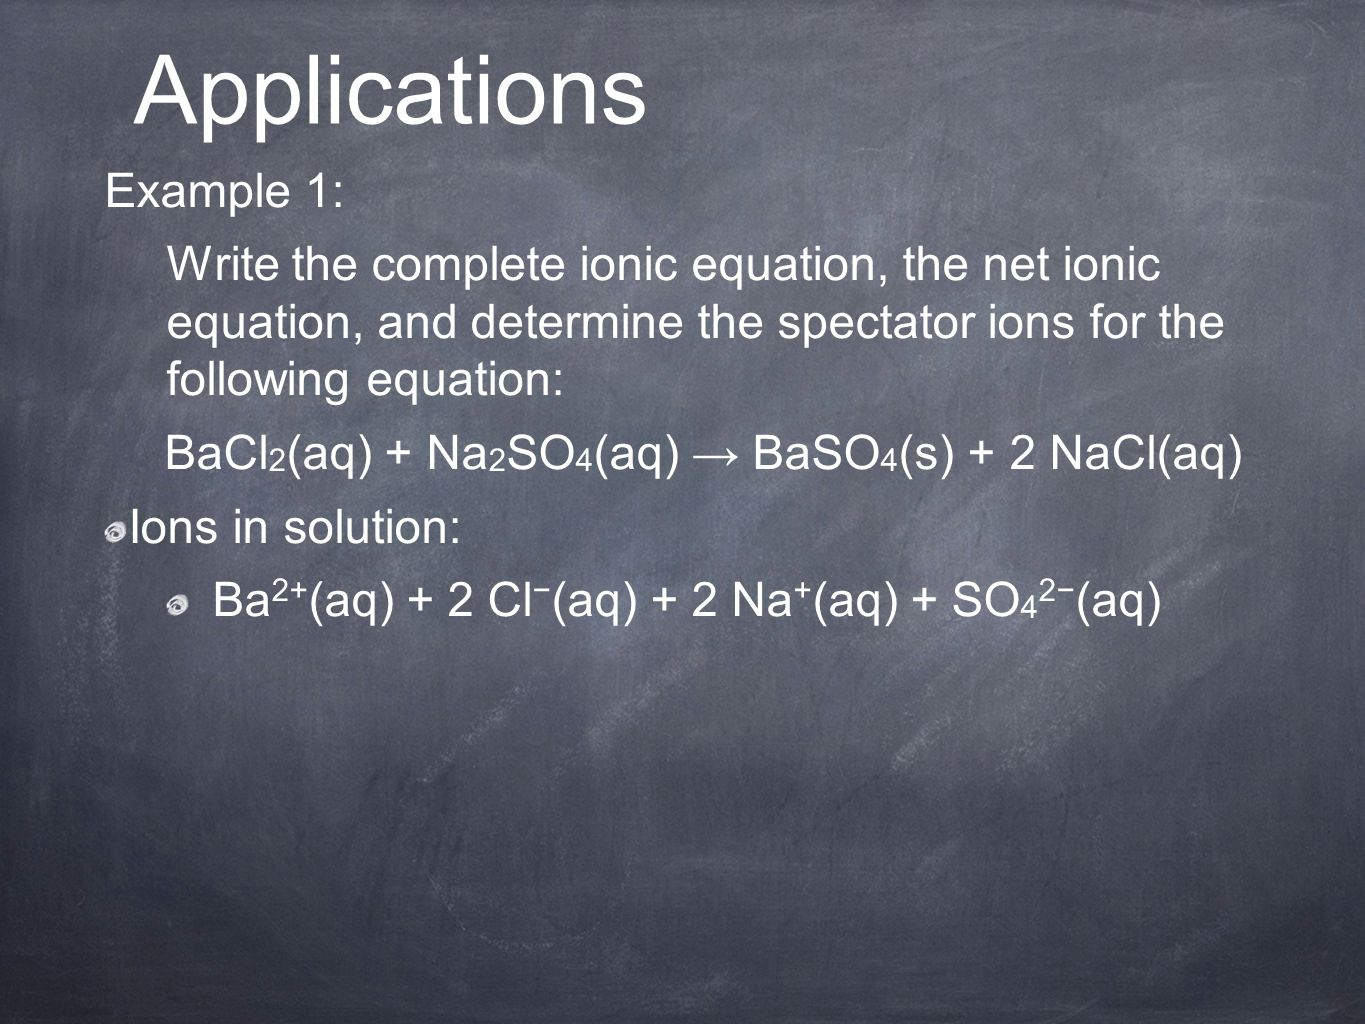 Example 1: Write the complete ionic equation, the net ionic equation, and determine the spectator ions for the following equation: BaCl 2 (aq) + Na 2 SO 4 (aq) → BaSO 4 (s) + 2 NaCl(aq) Ions in solution: Ba 2+ (aq) + 2 Cl − (aq) + 2 Na + (aq) + SO 4 2− (aq) Applications